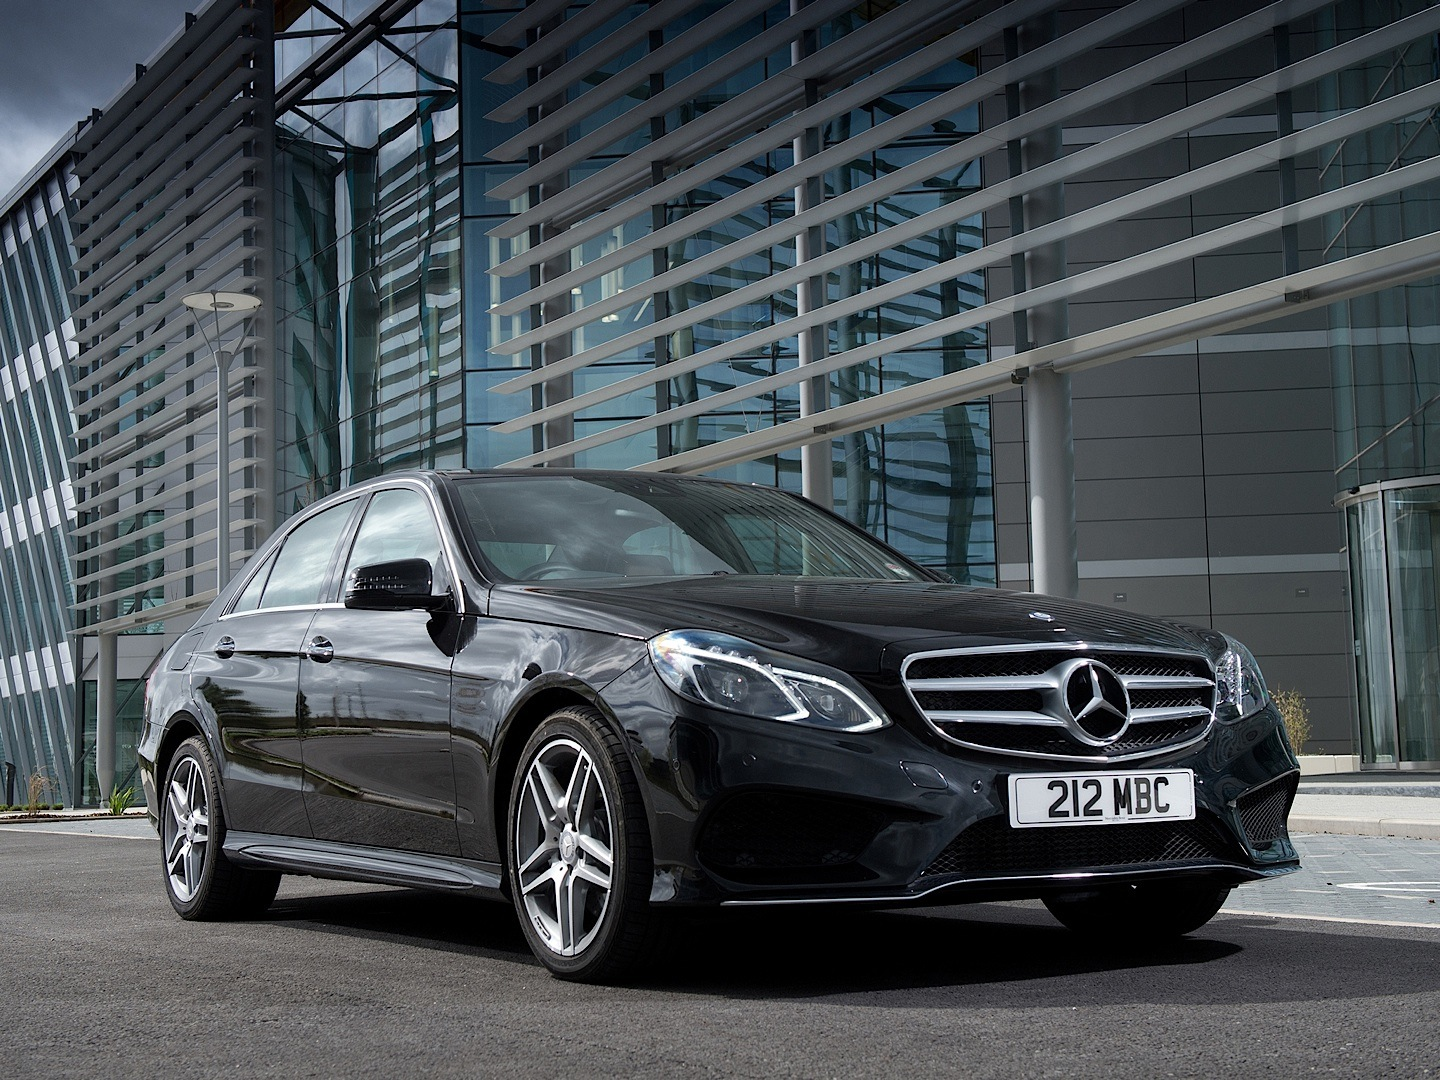 Junk Car Buyer >> W212 E-Class Facelift Gets Reviewed by CarBuyer ...